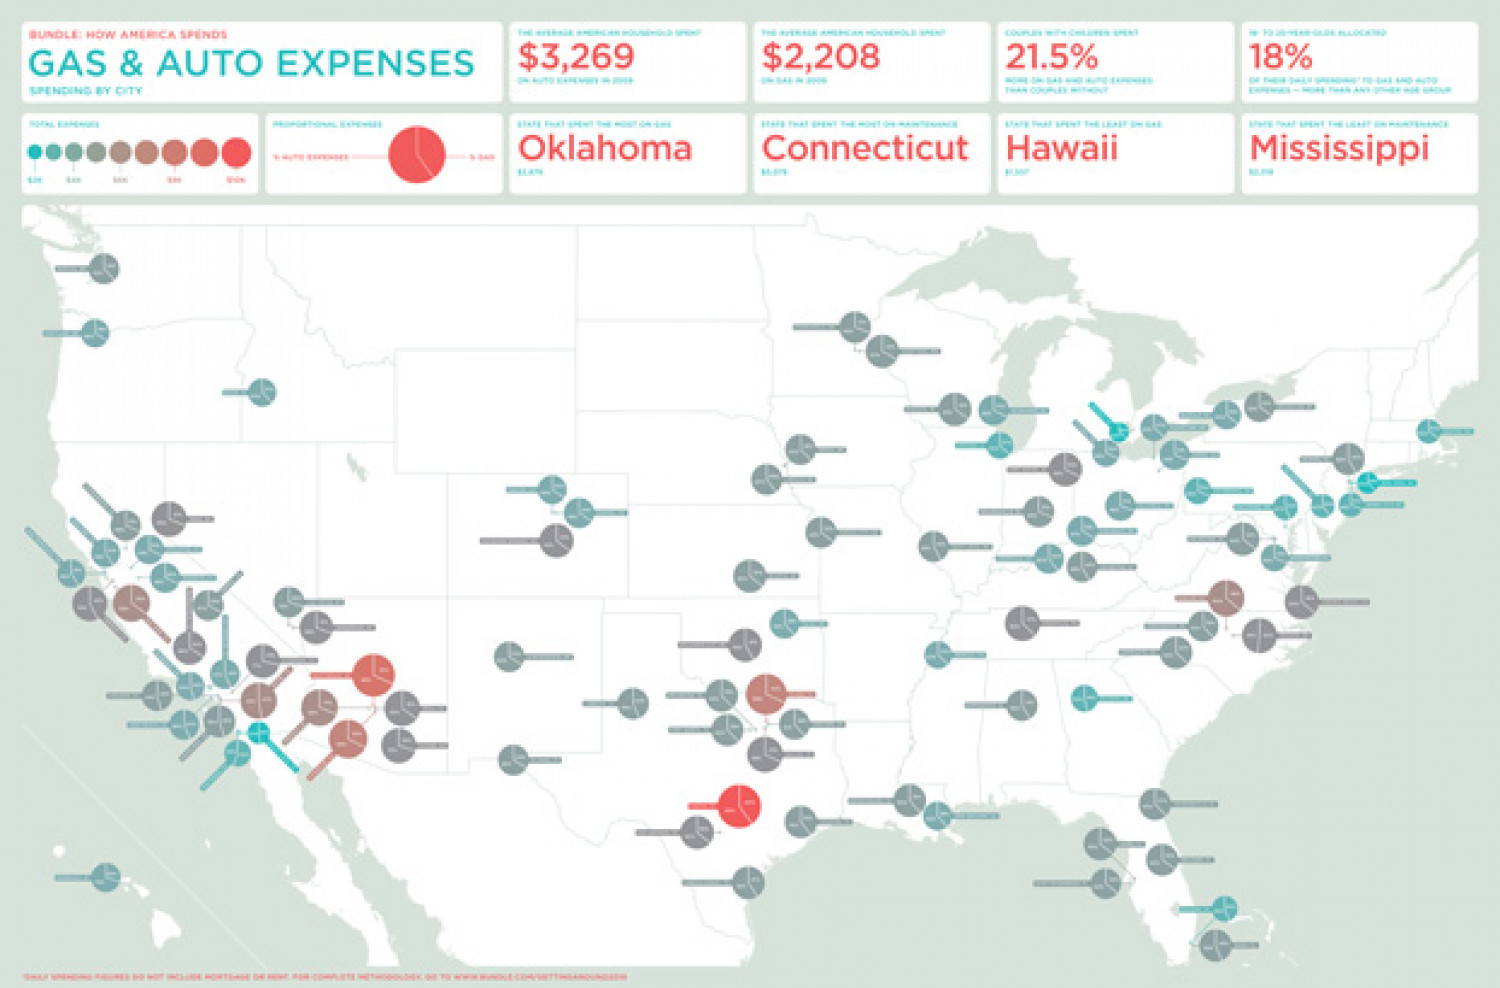 The Cost of Getting Around Infographic